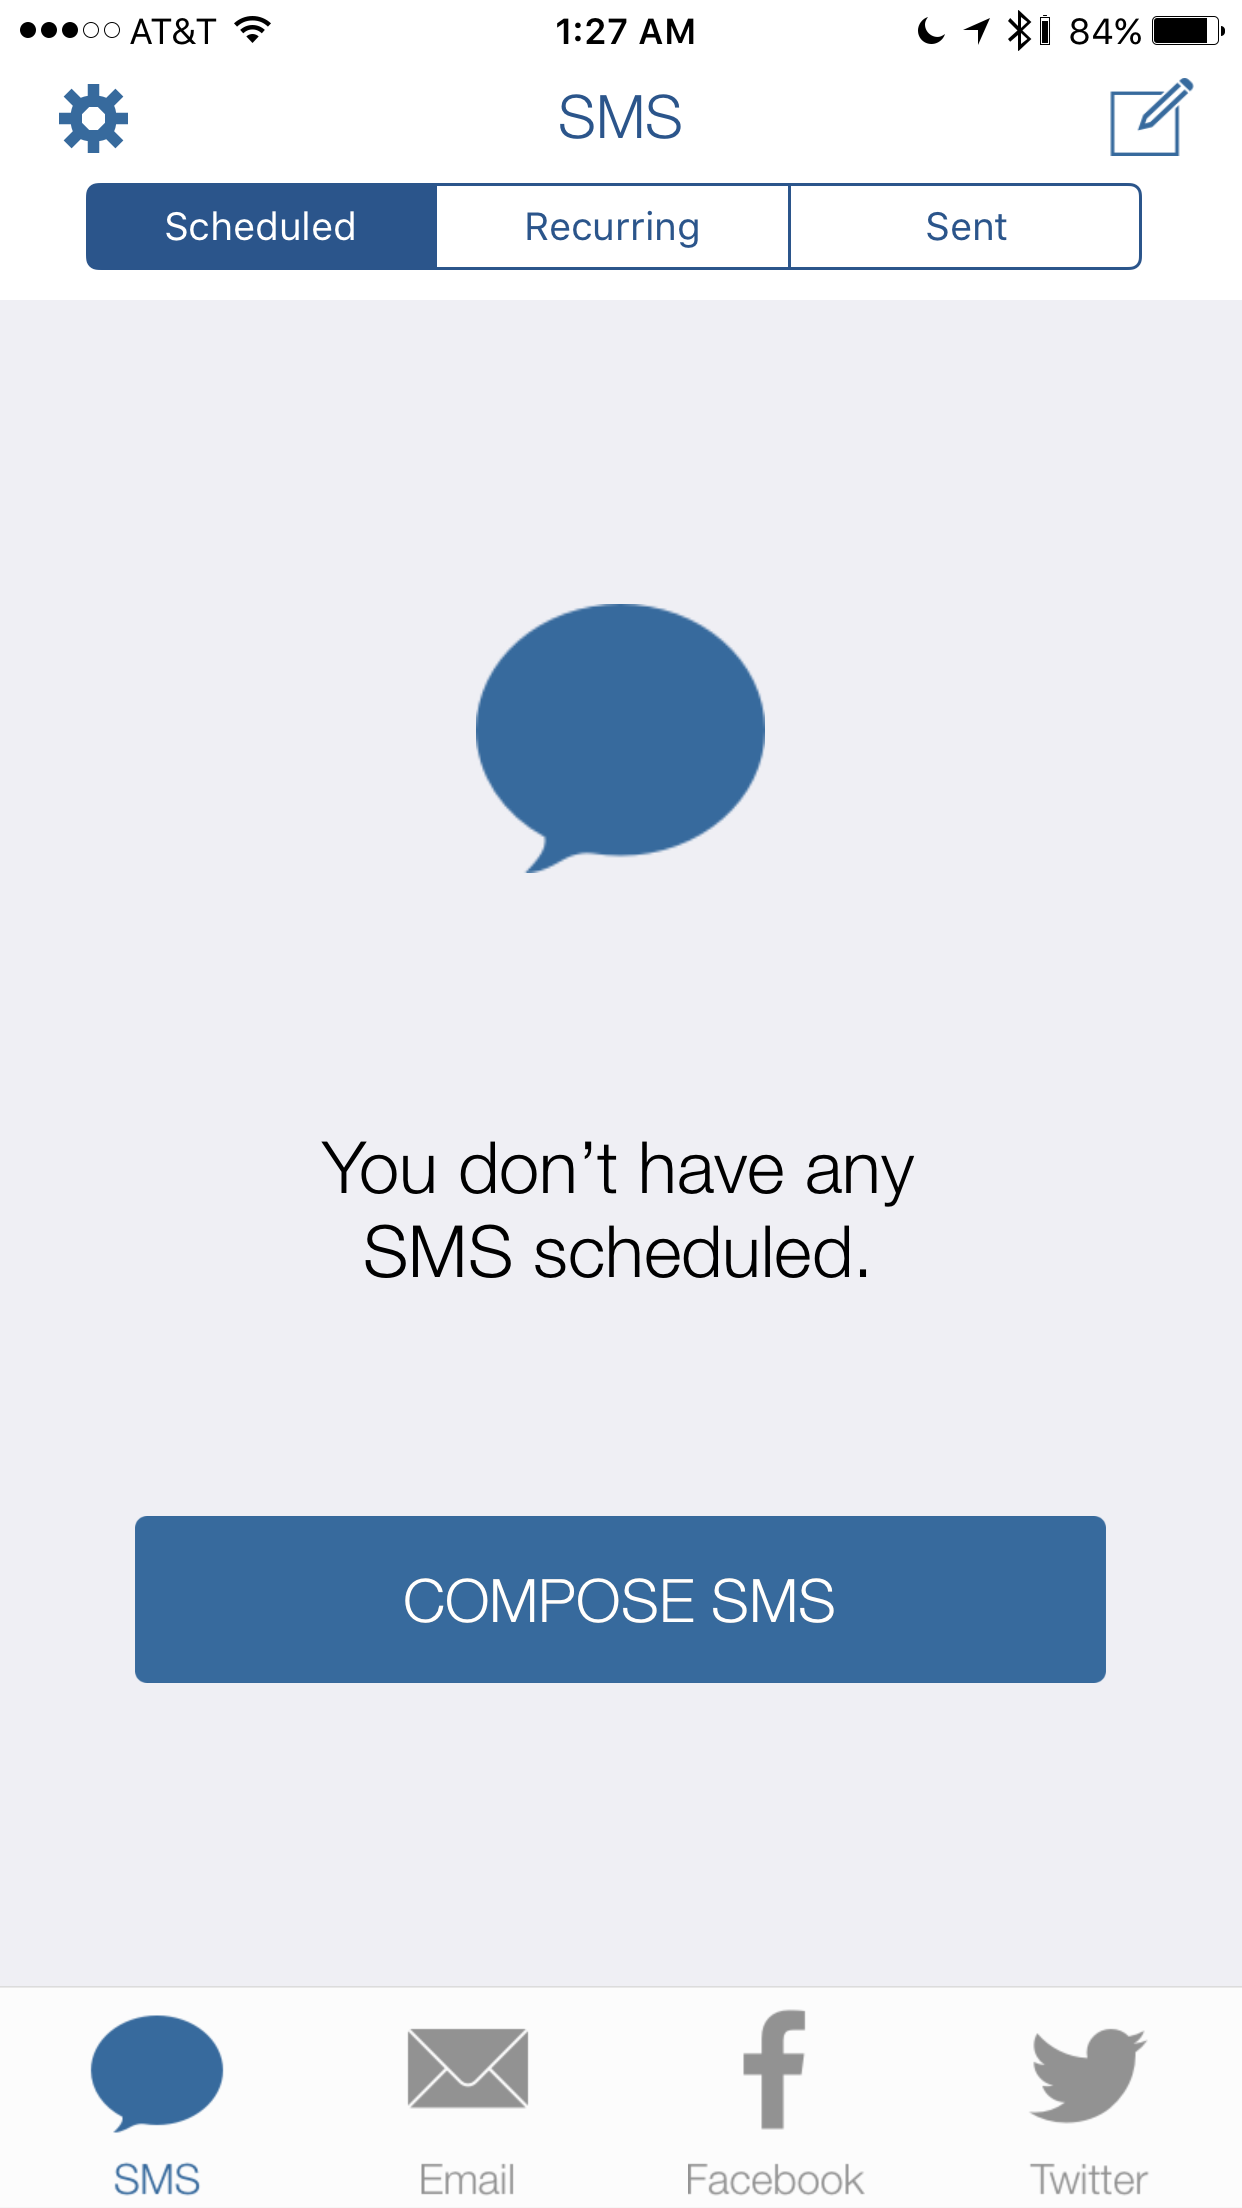 delayd compose sms